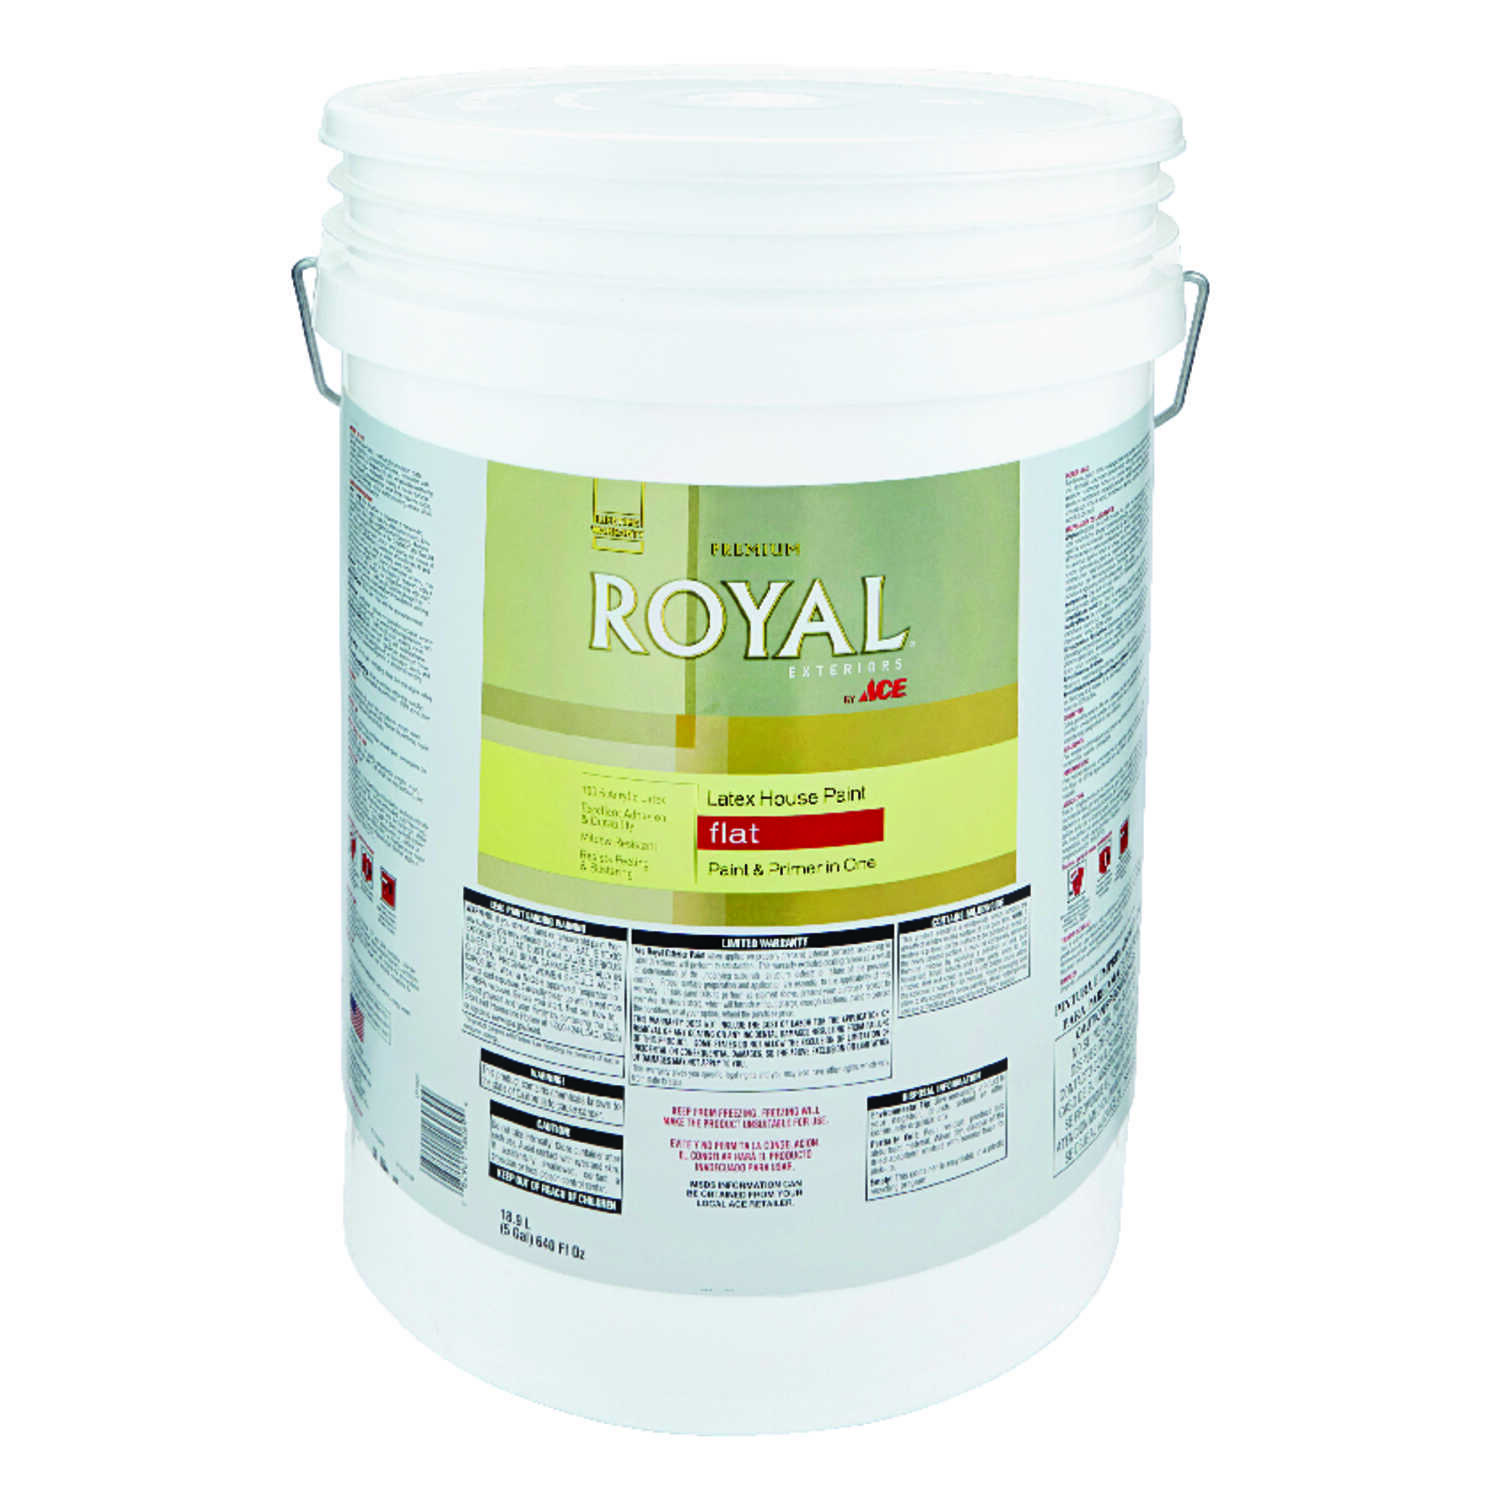 Ace  Royal  Flat  White  Acrylic Latex  House Paint & Primer  5 gal.